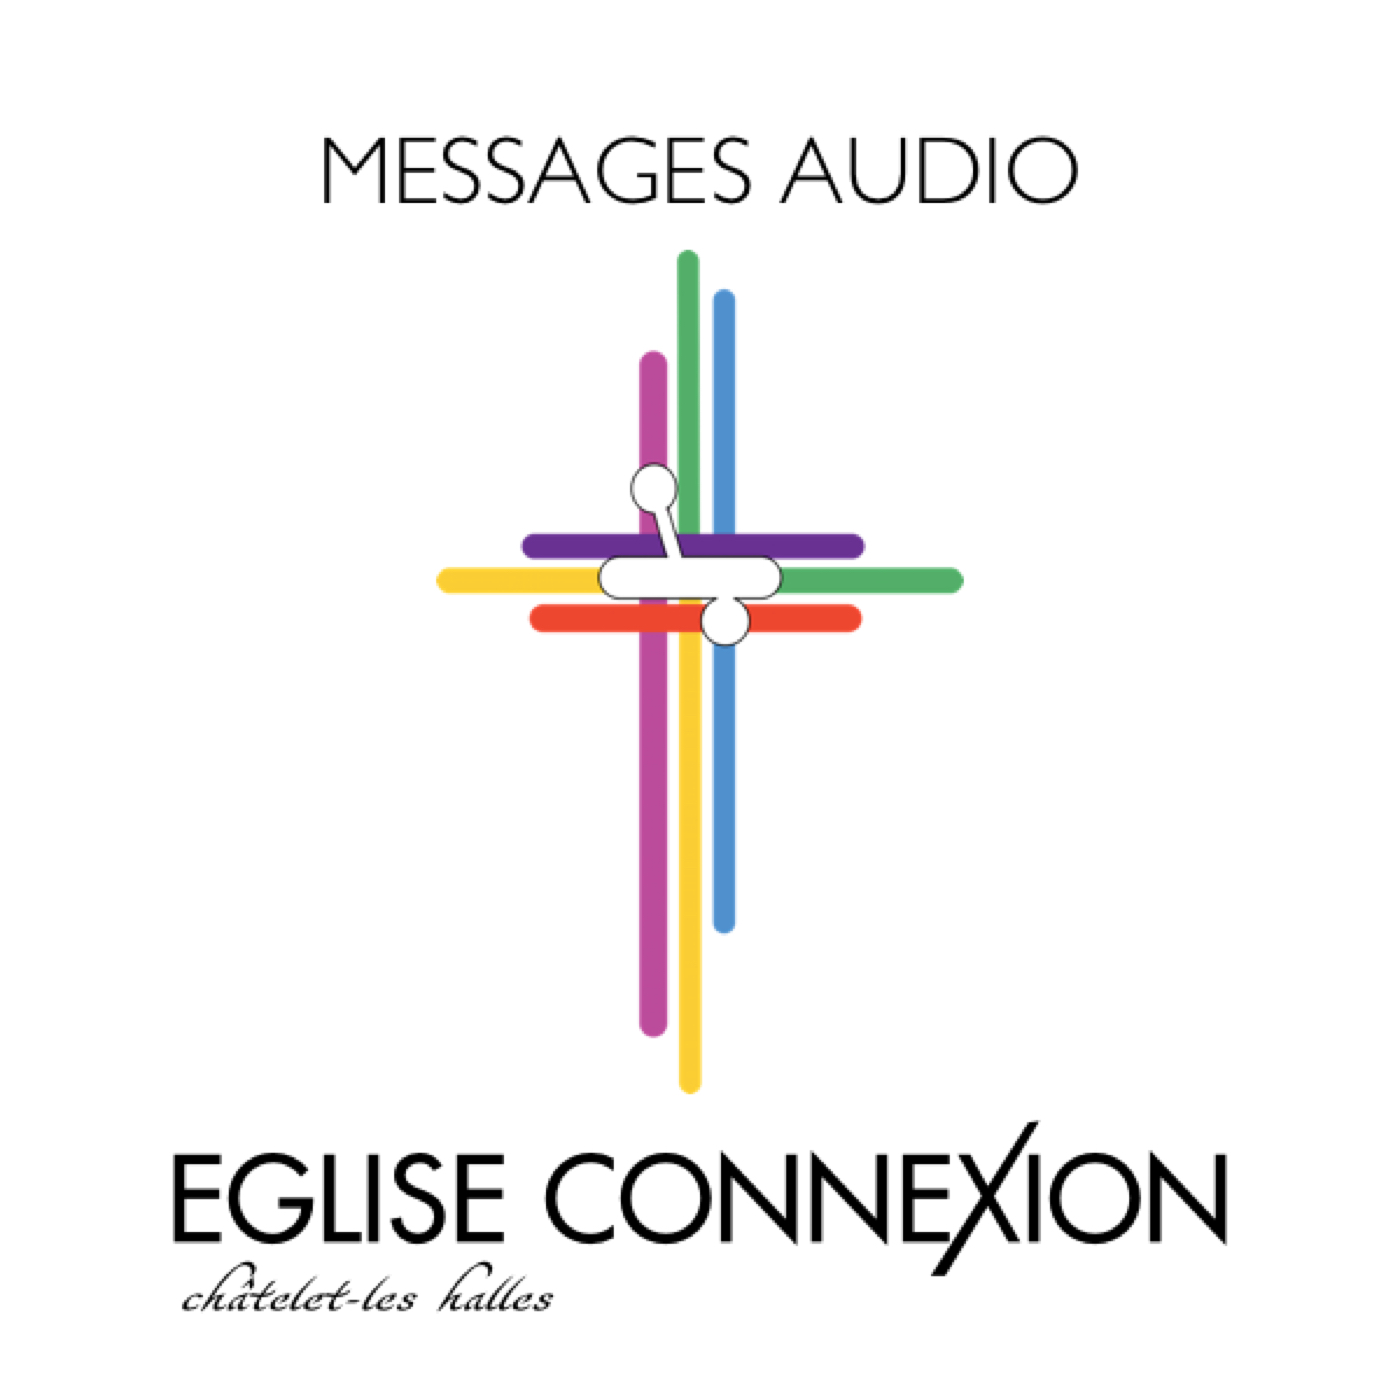 Messages audio - Eglise Connexion